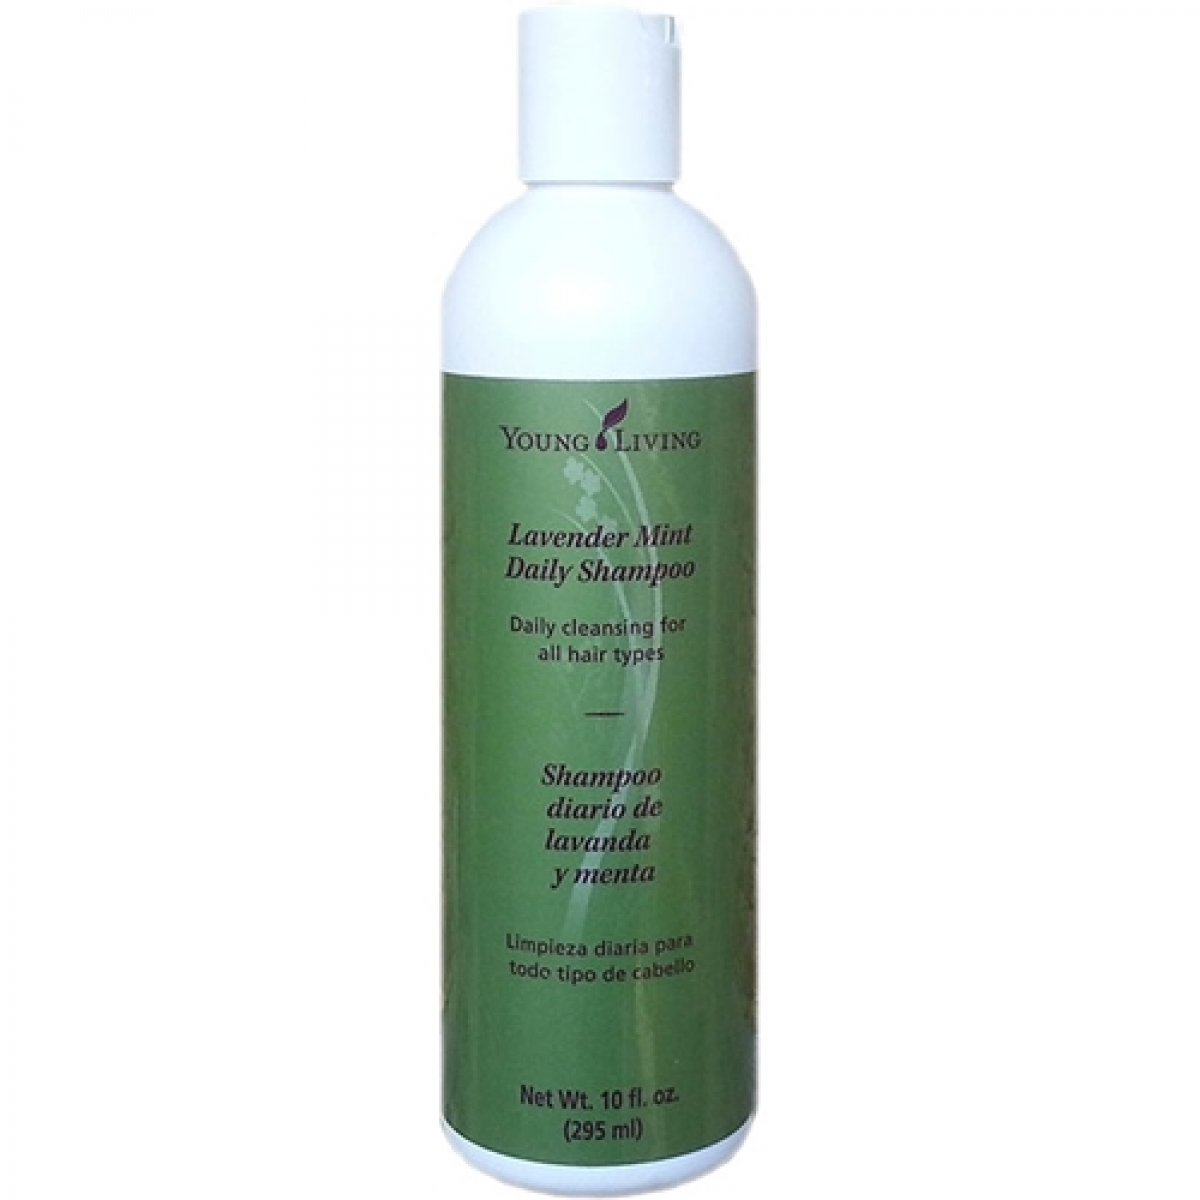 Lavender Mint Daily Shampoo 295ml Www Thelivingessence Com